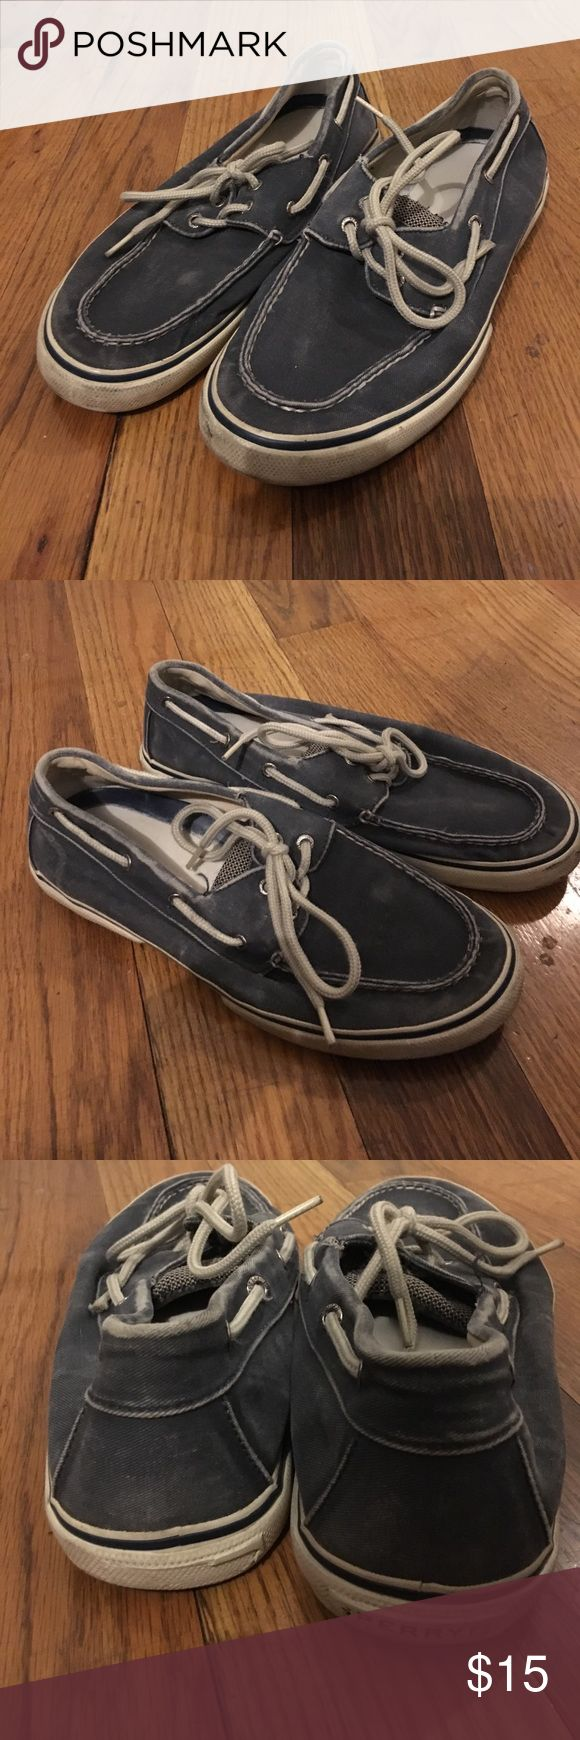 Sperry Top Sider Blue Boat Shoes Size 9 Well loved condition - please review all photos for wear / markings. Interior sole is not original. There is wear to back heel where the rubber is worn thru- see photos. Feel free to make an offer! Sperry Top-Sider Shoes Boat Shoes